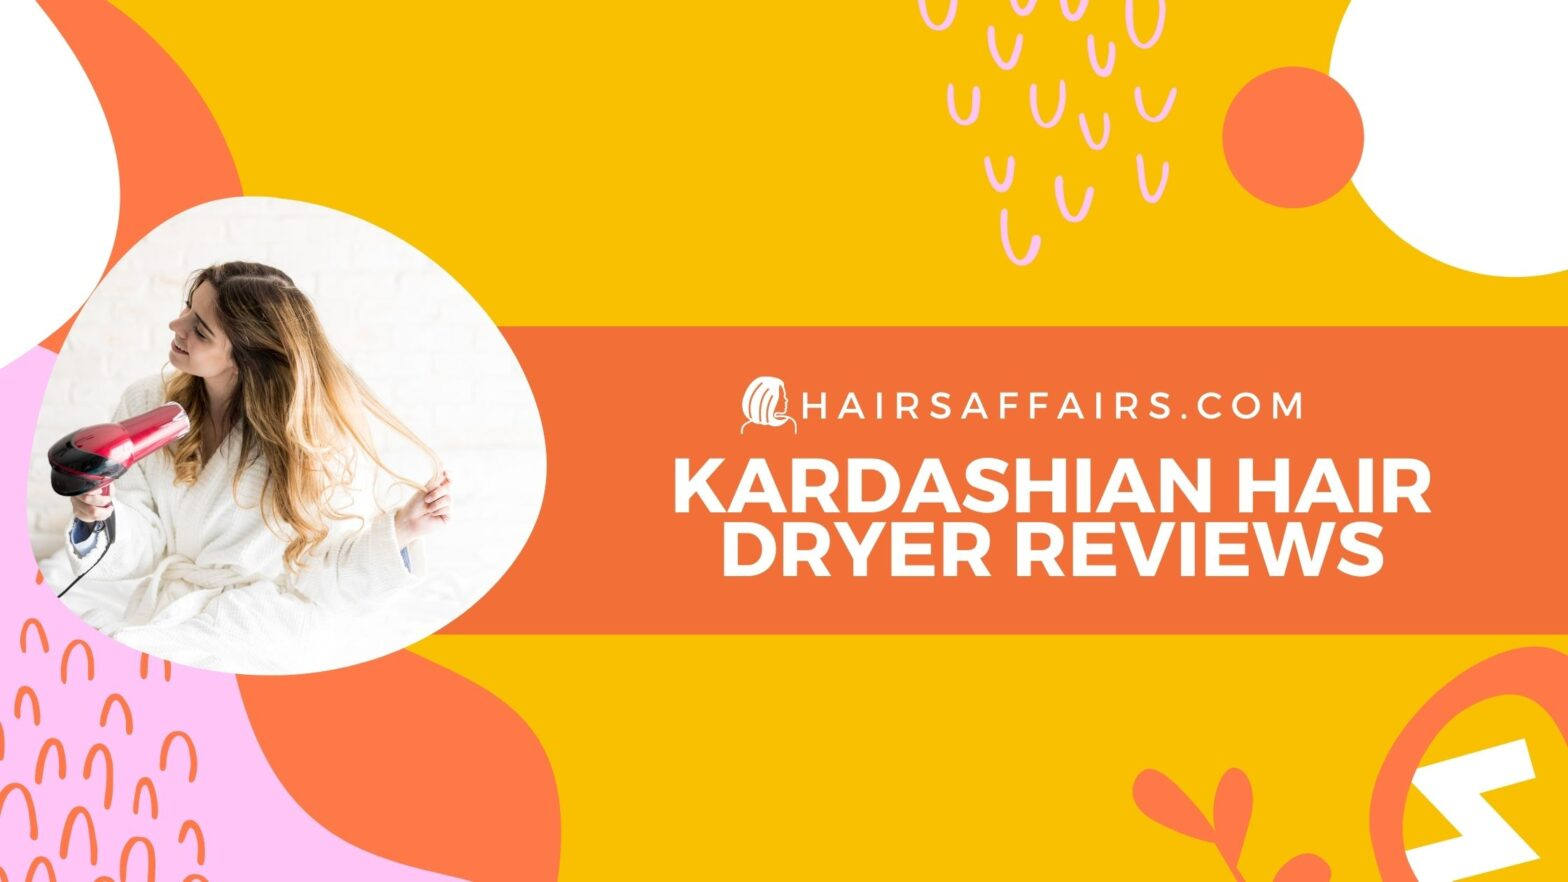 HA-Kardashian-Hair-Dryer-Reviews